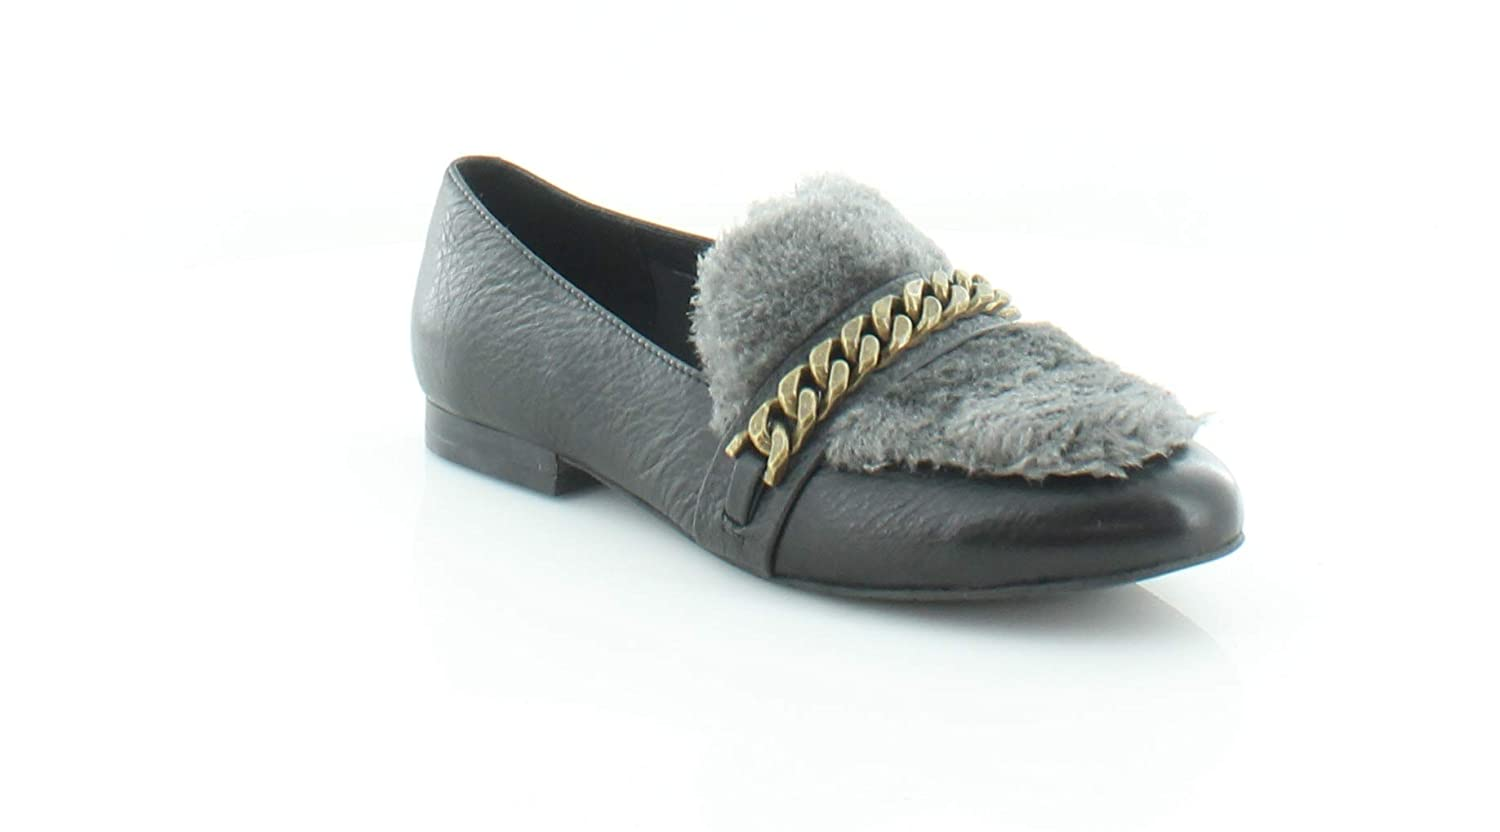 Kenneth Cole Womens Wilda Leather Closed Toe Loafers